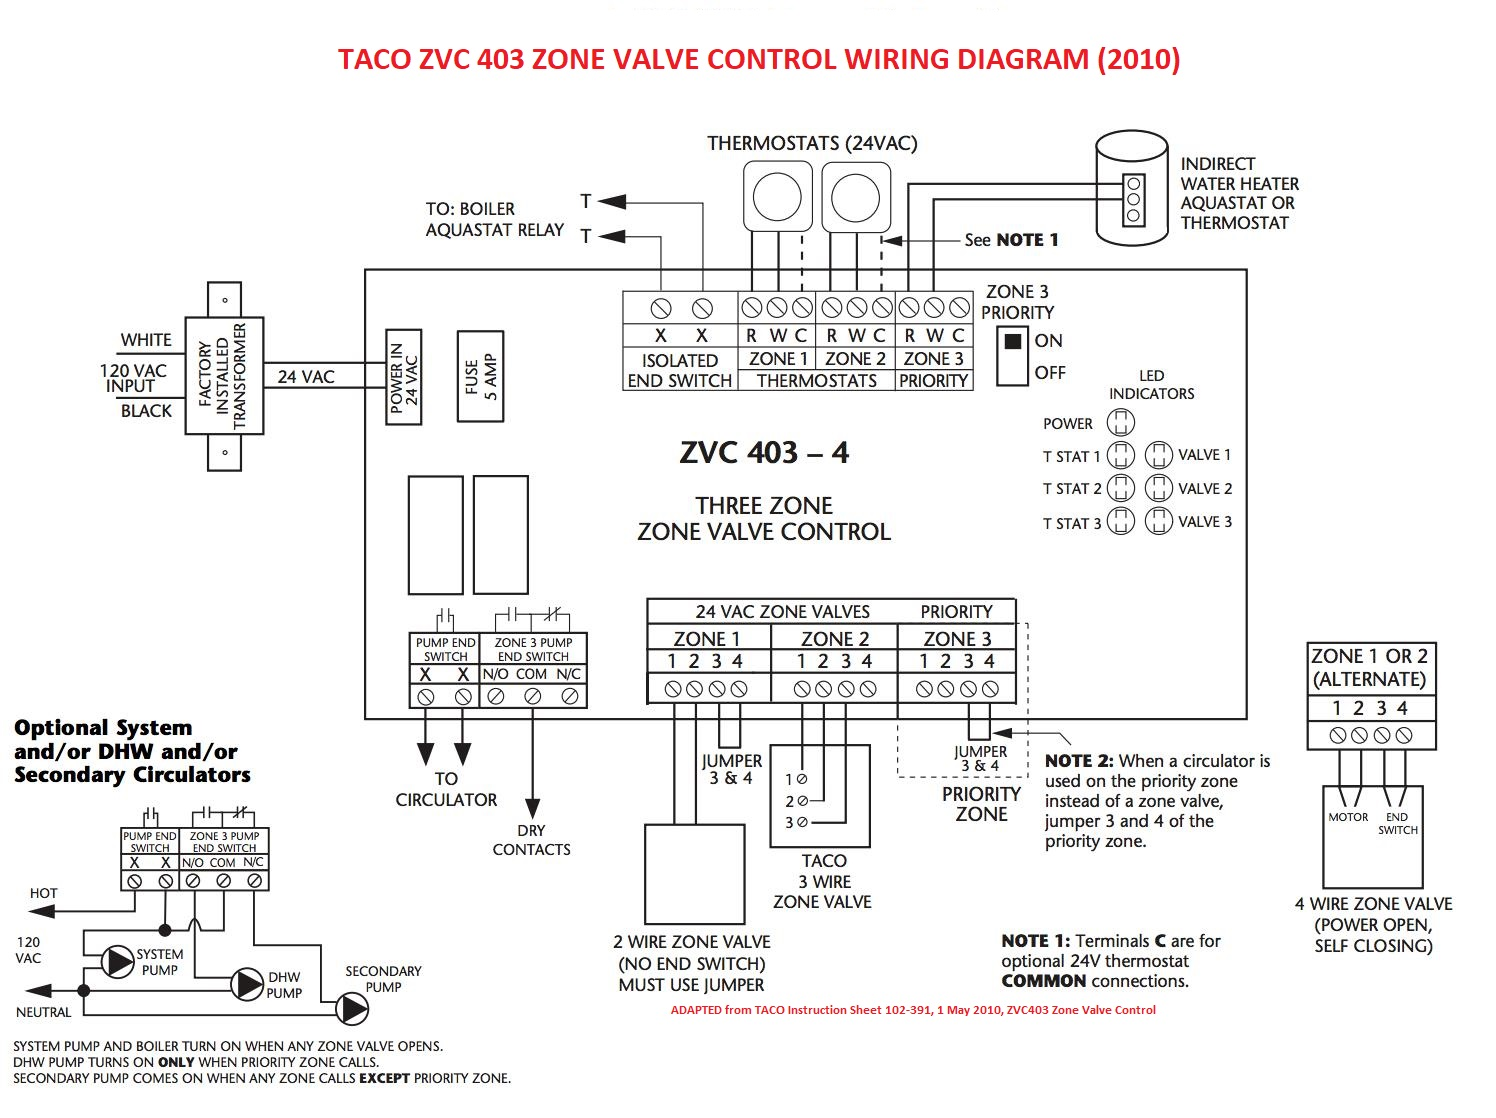 Taci ZVC493 wiring diagram - click to enlarge - at InspectApedia.com  Individual Hydronic Heating Zone Valve ...